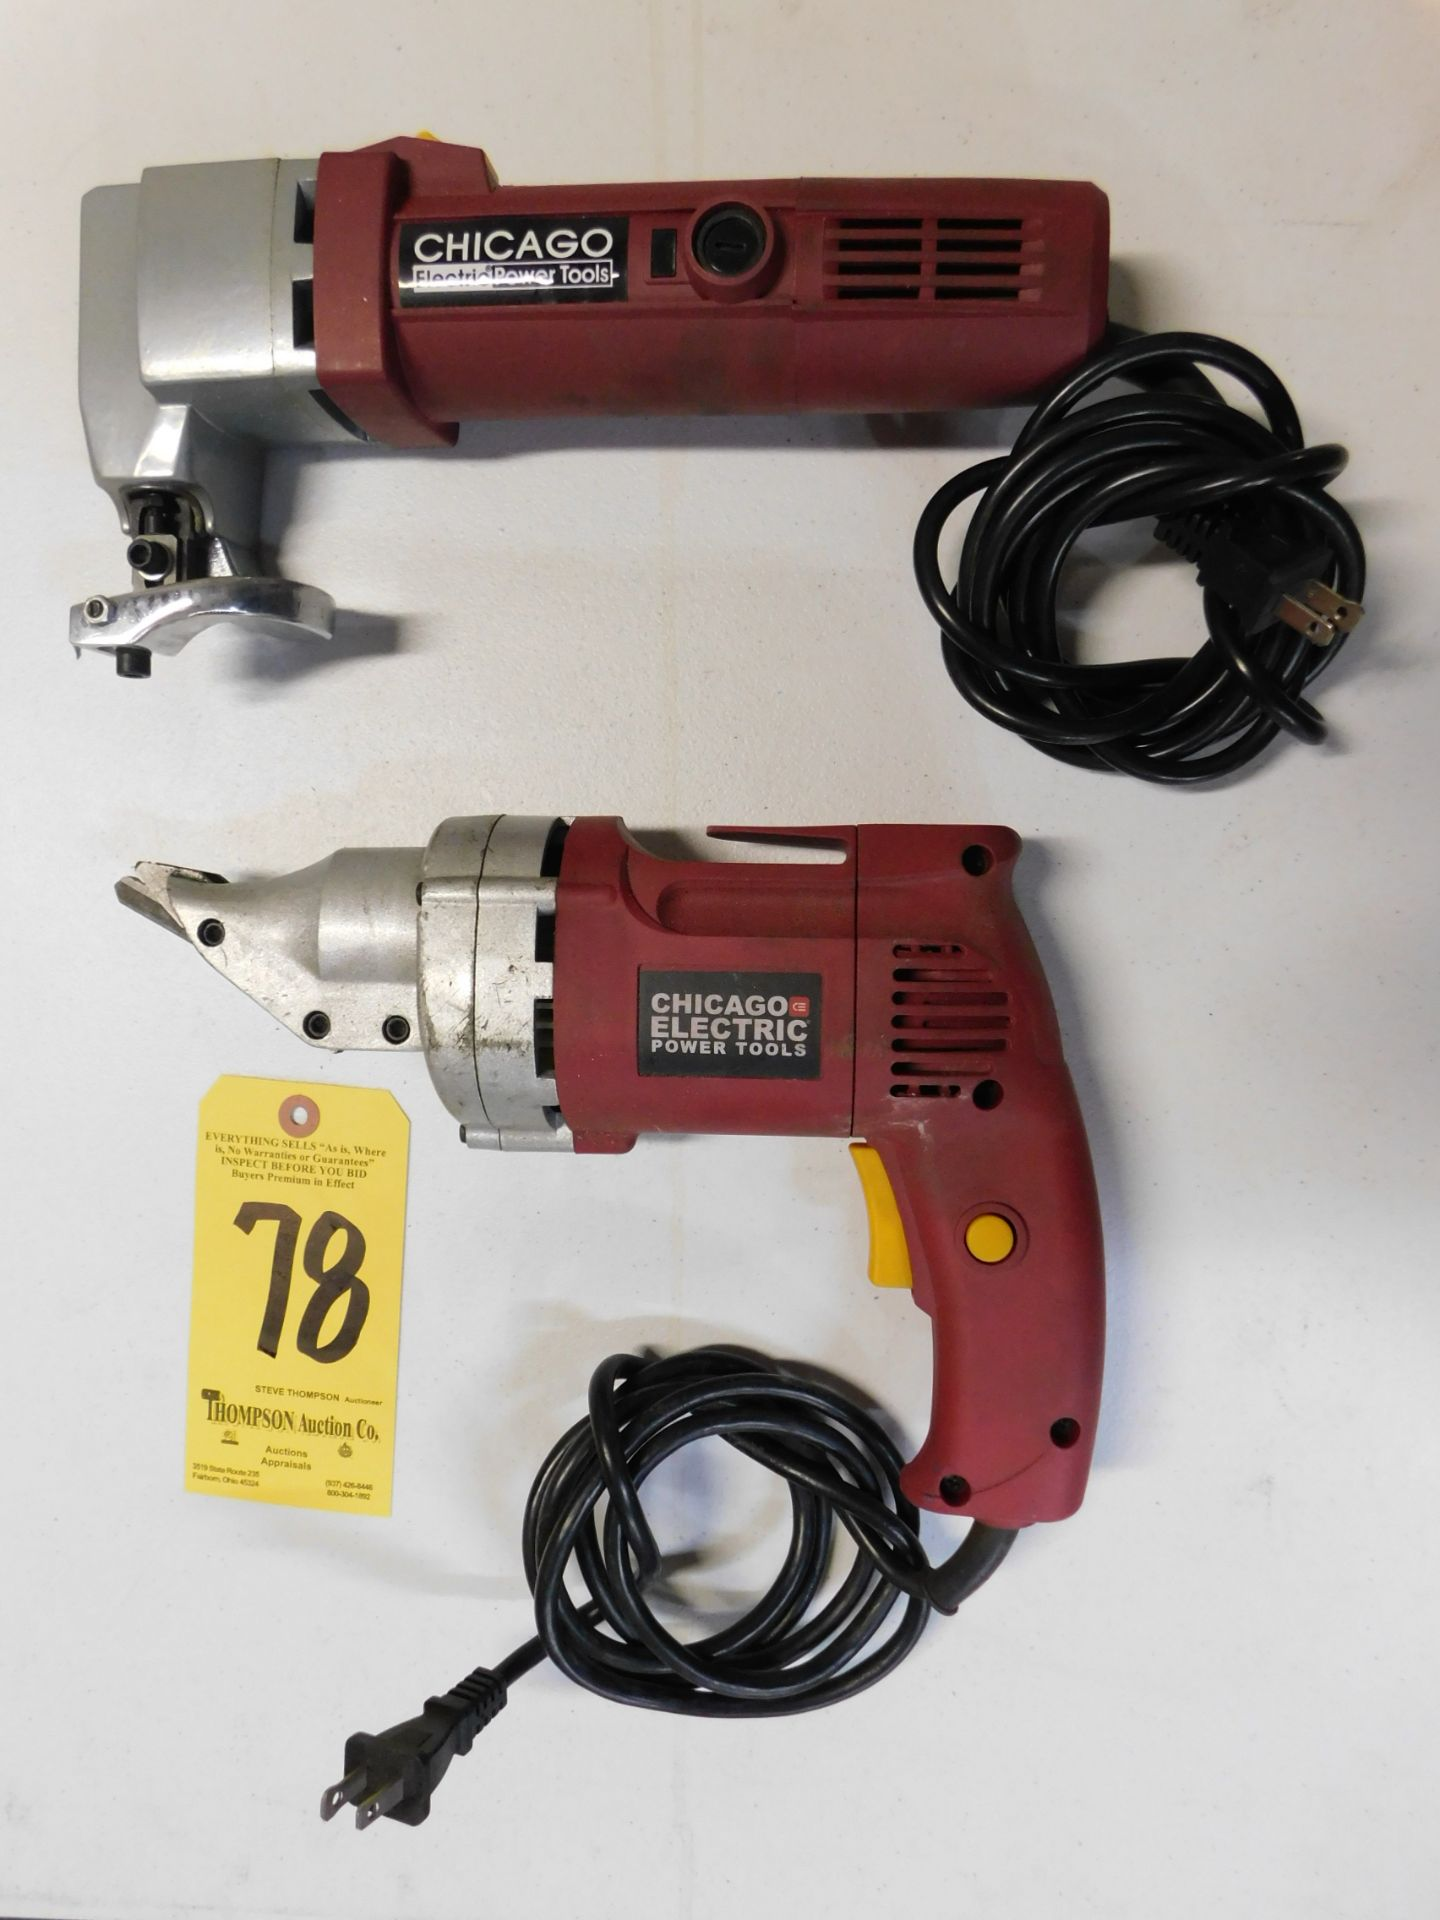 Lot 78 - Chicago Electric Shear and Swivel Head Shear, Lot Location 3204 Olympia Dr. A, Lafayette, IN 47909